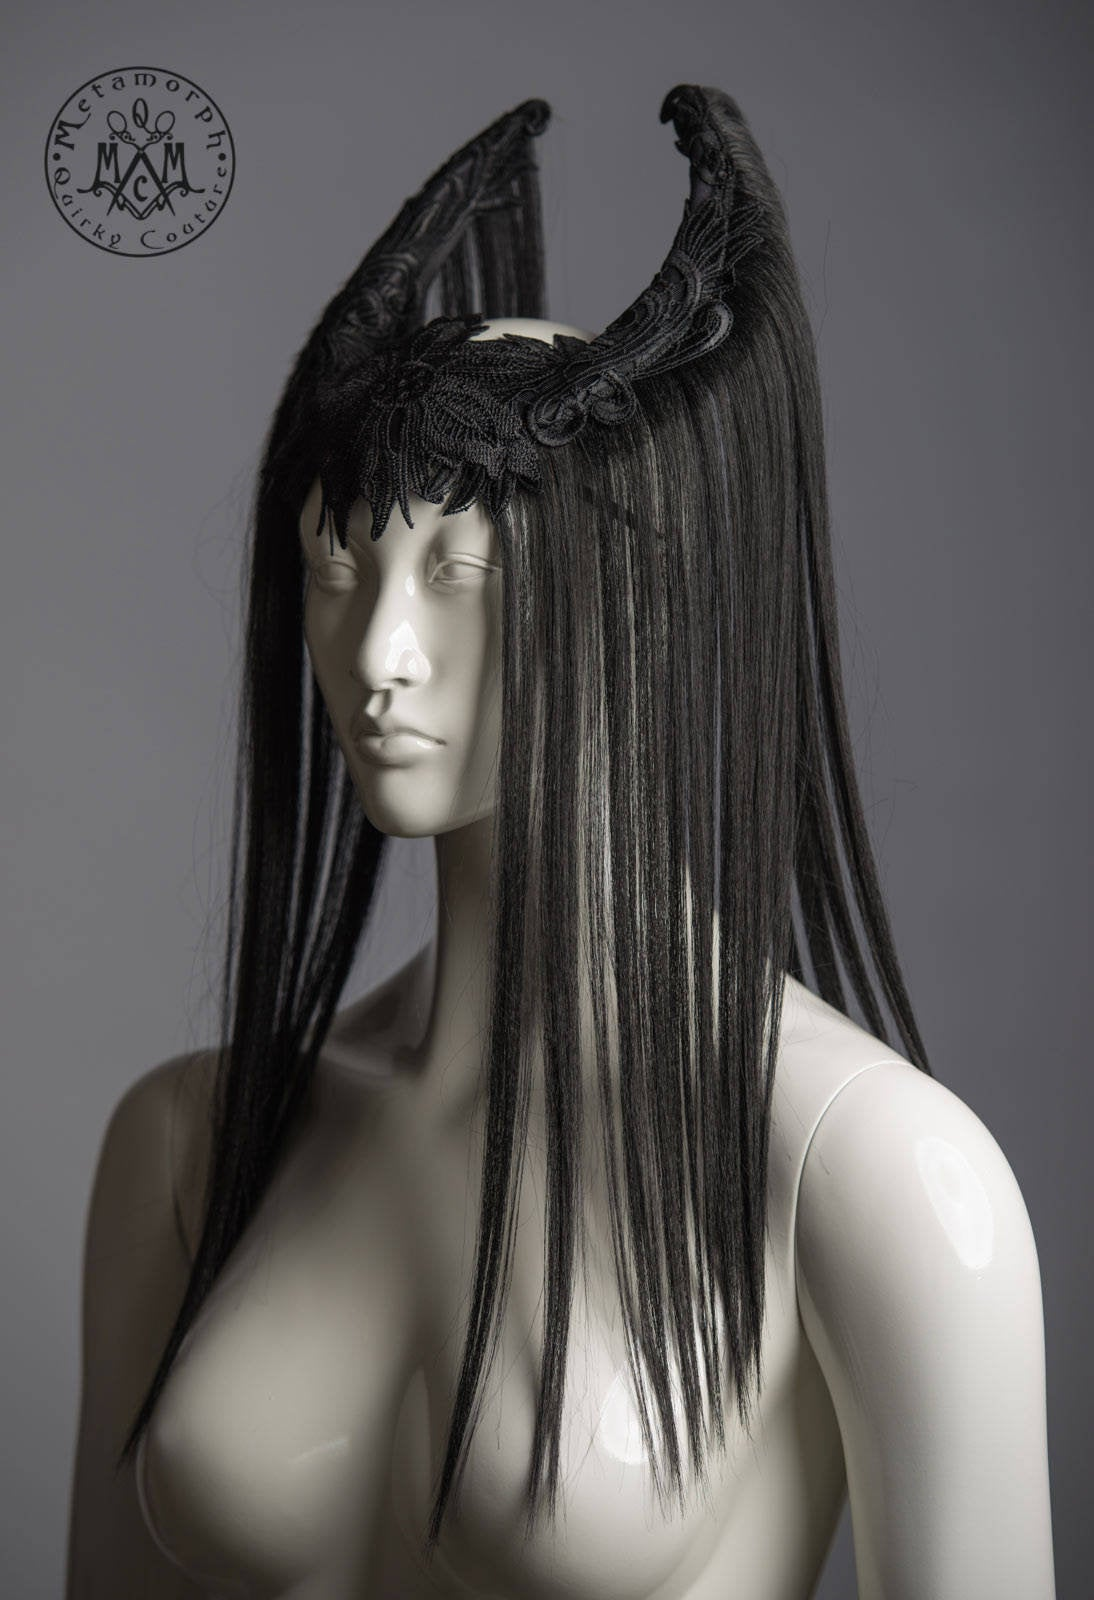 Black horn strega headdress / Vampire crown with hair and lace / Gothic art wig